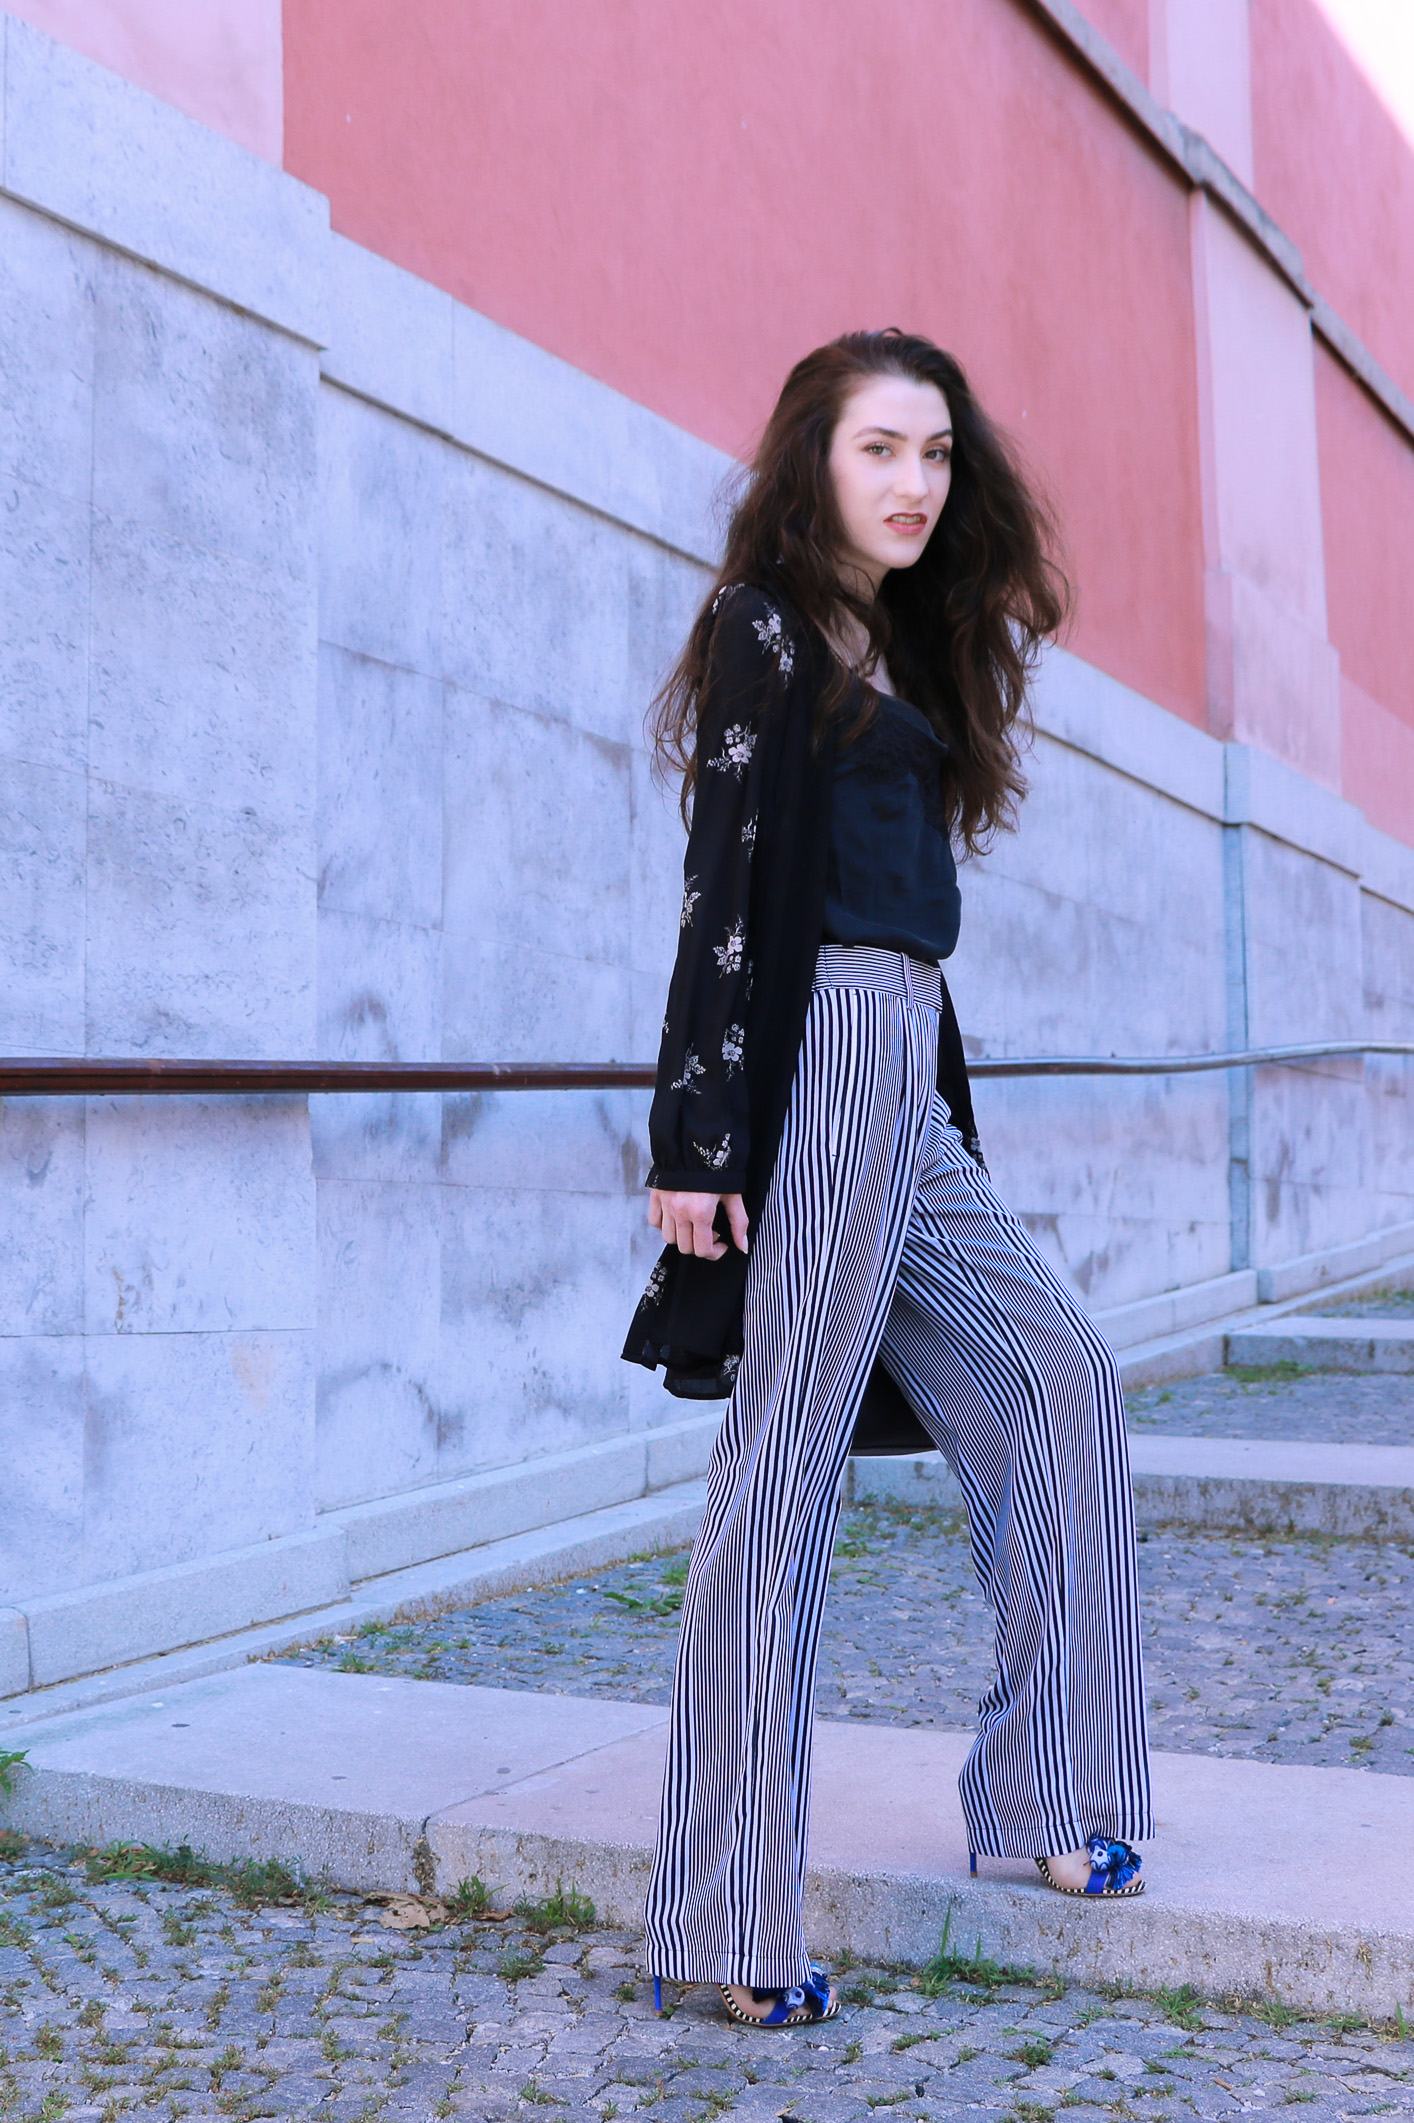 Fashion blogger Veronika Lipar of Brunette From Wall Street sharing how to wear layers this summer in shirtdress and wide-leg pants